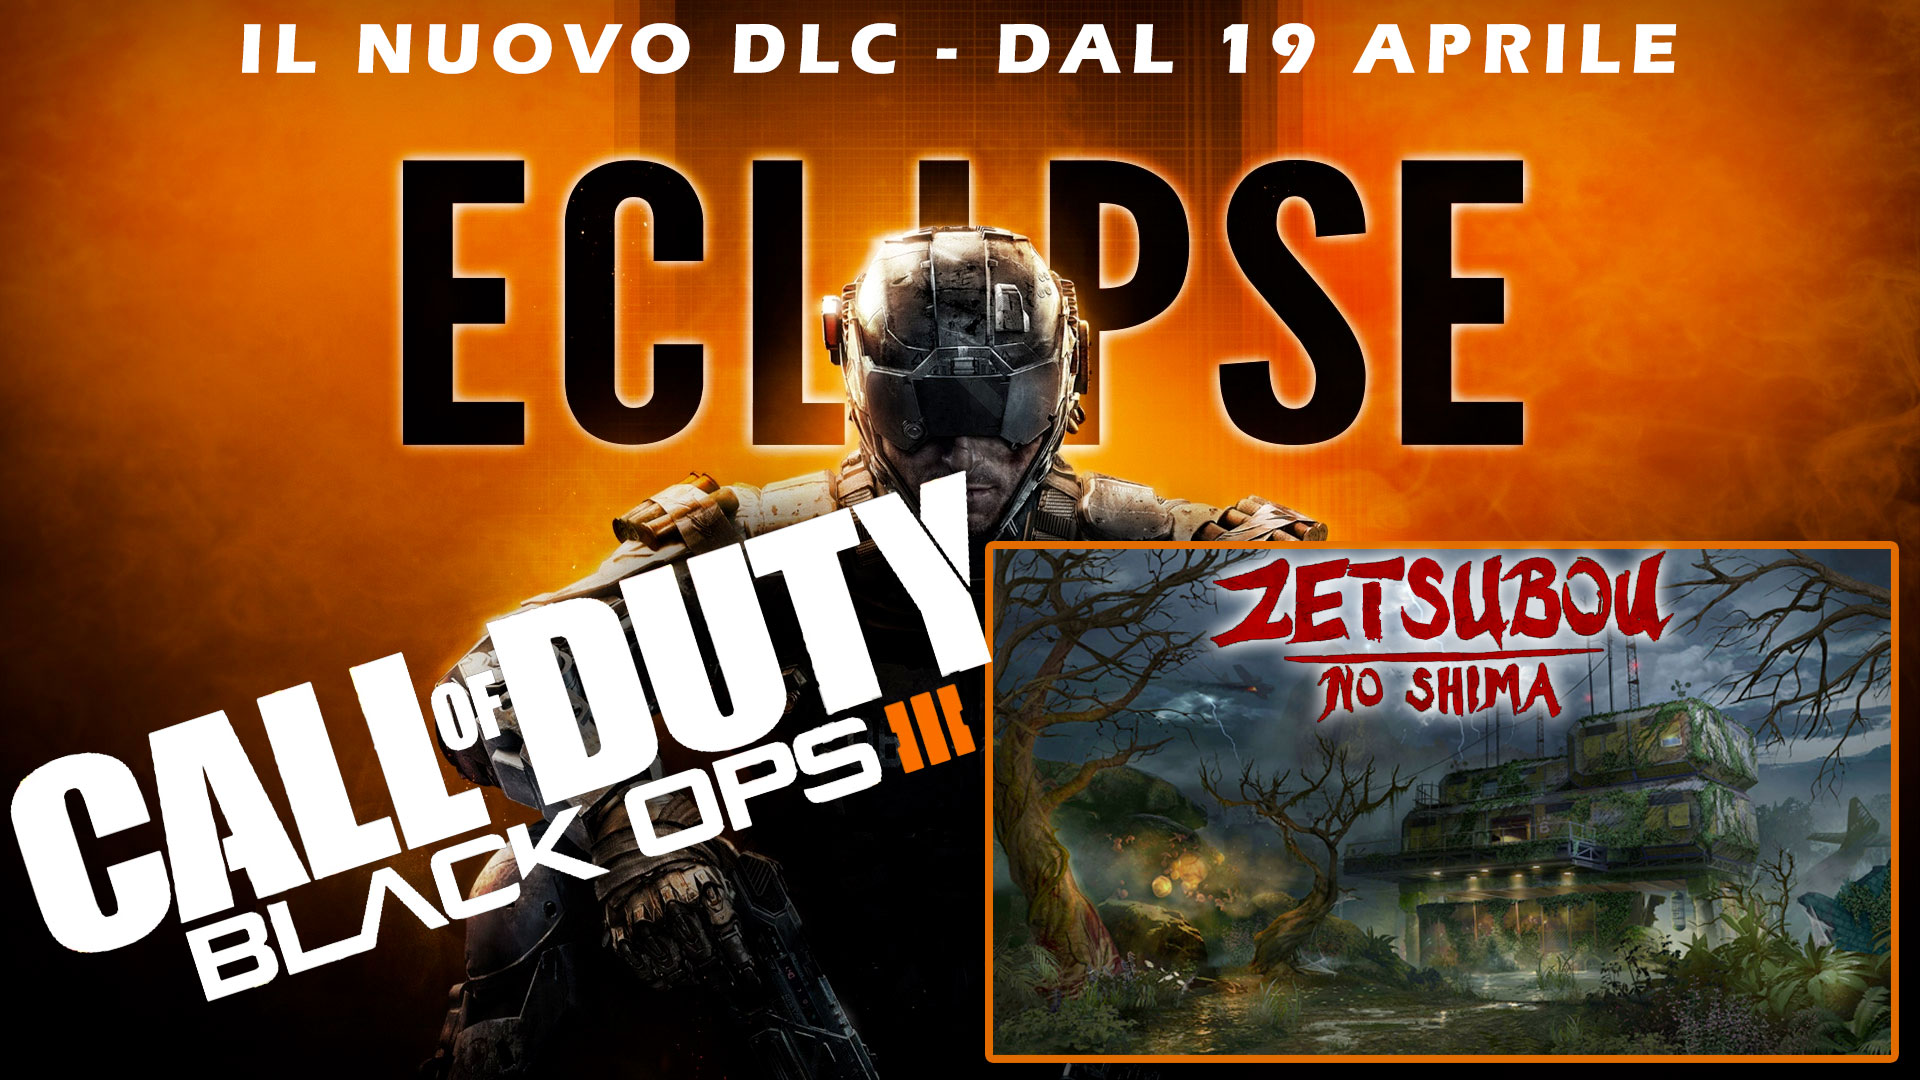 Call of Duty - black ops III DLC Eclipse - Zetsobou No Shima